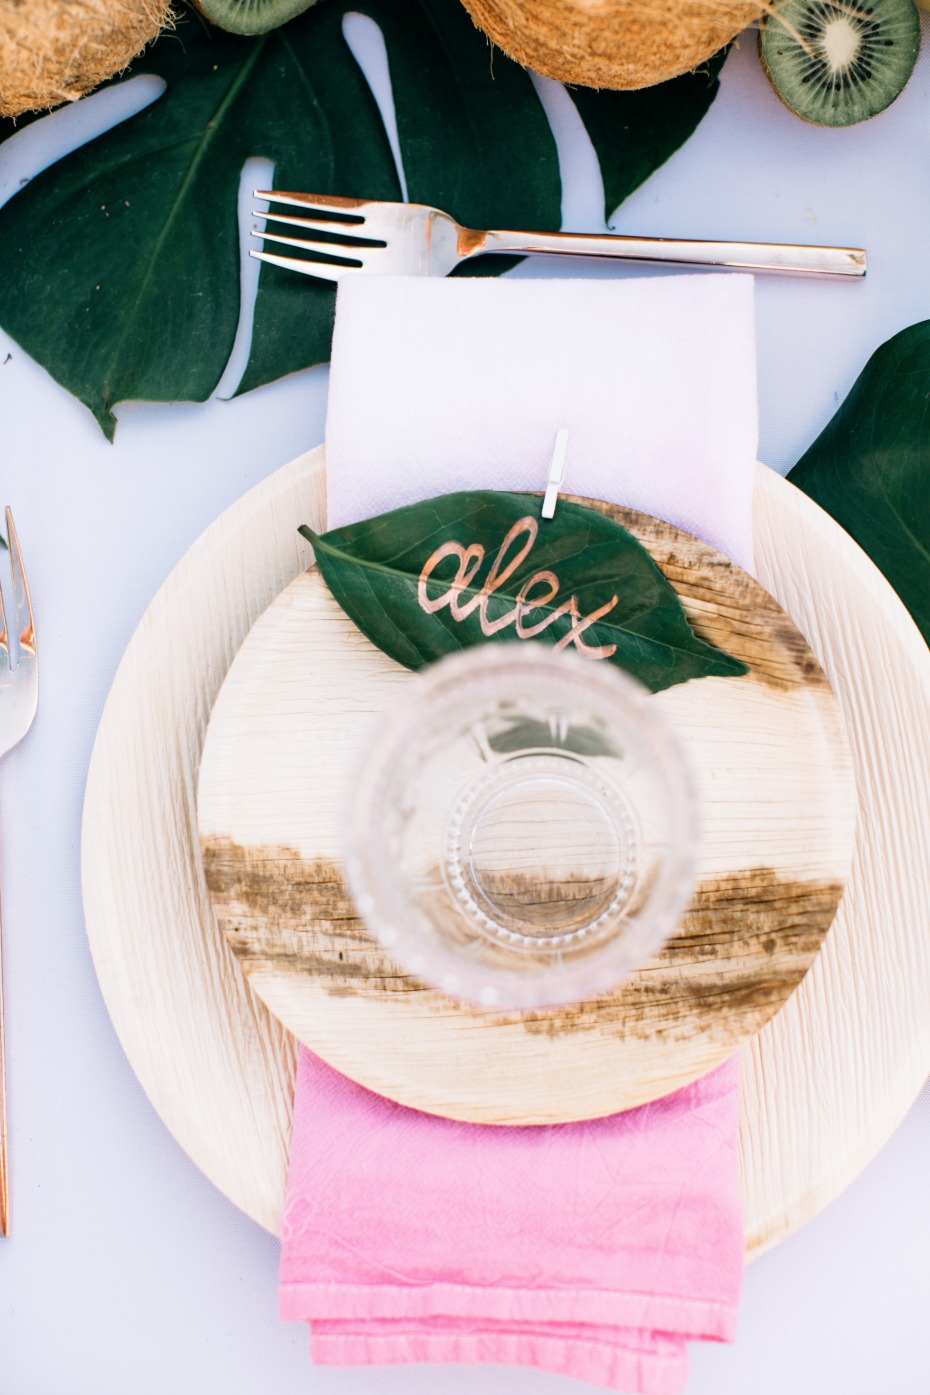 Babu disposable plates by Bambu were used at this wedding instead of traditional plates